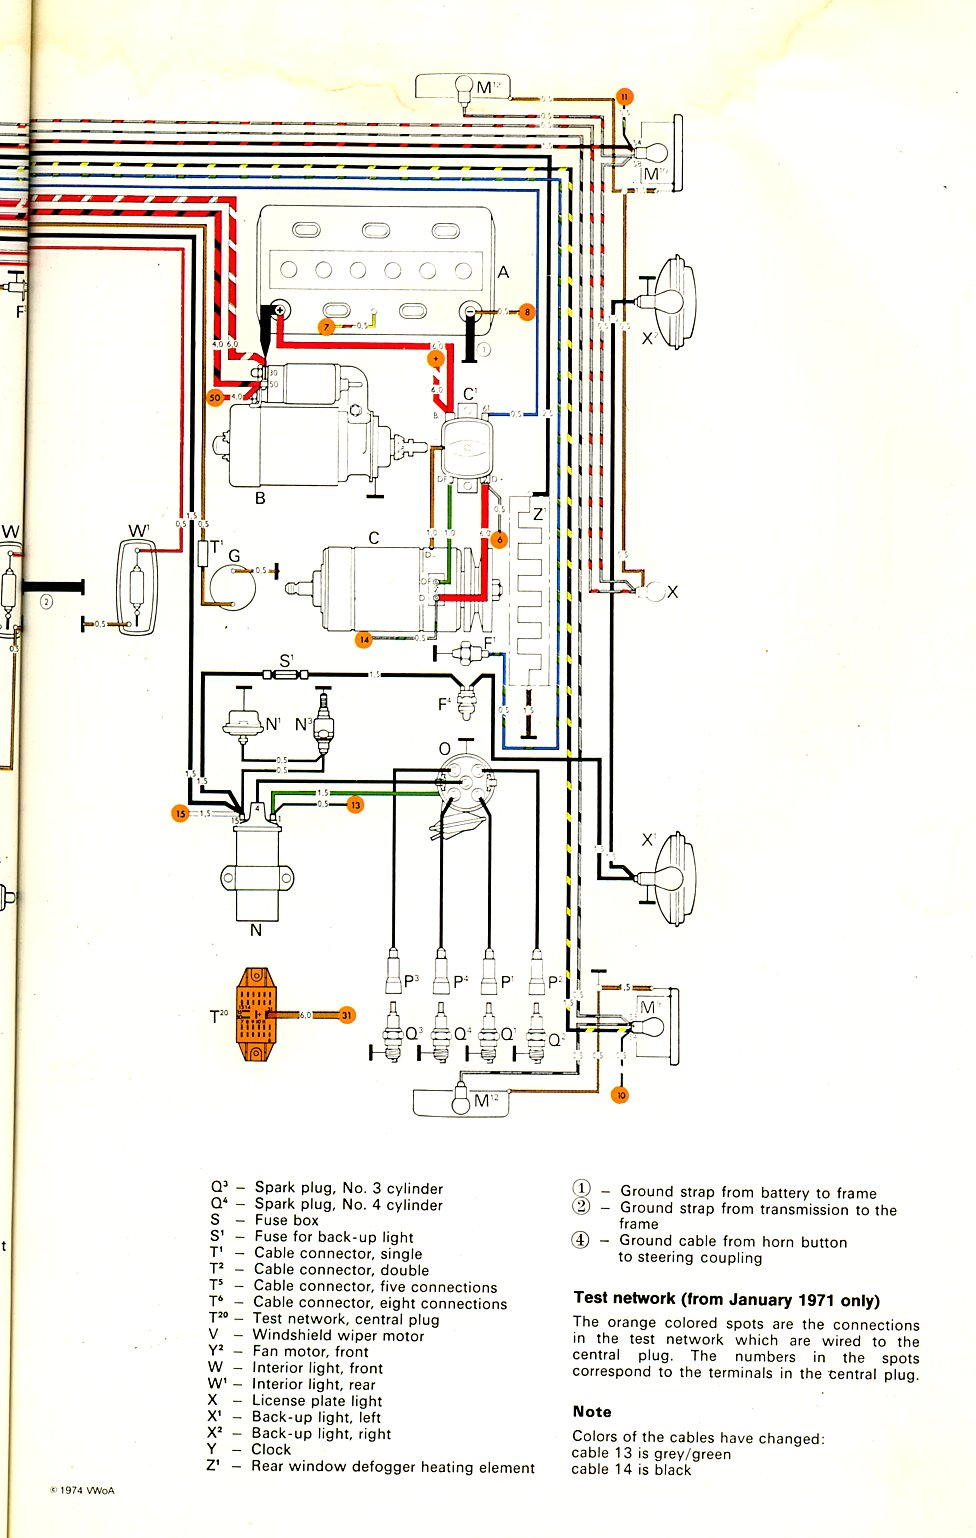 baybus_71b 1971 bus wiring diagram thegoldenbug com Volkswagen Type 2 Wiring Harness at crackthecode.co